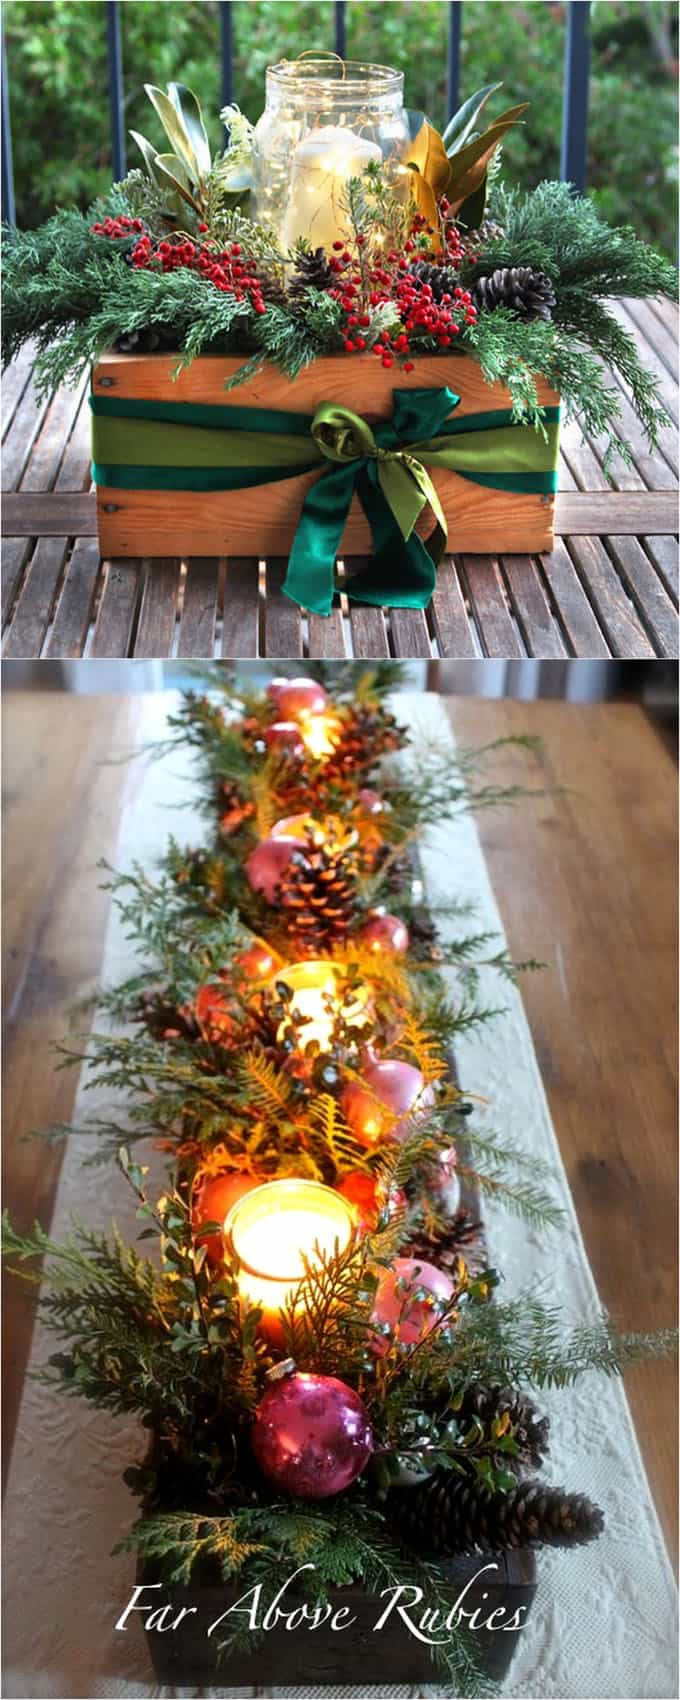 title | Christmas Centerpiece For Tables